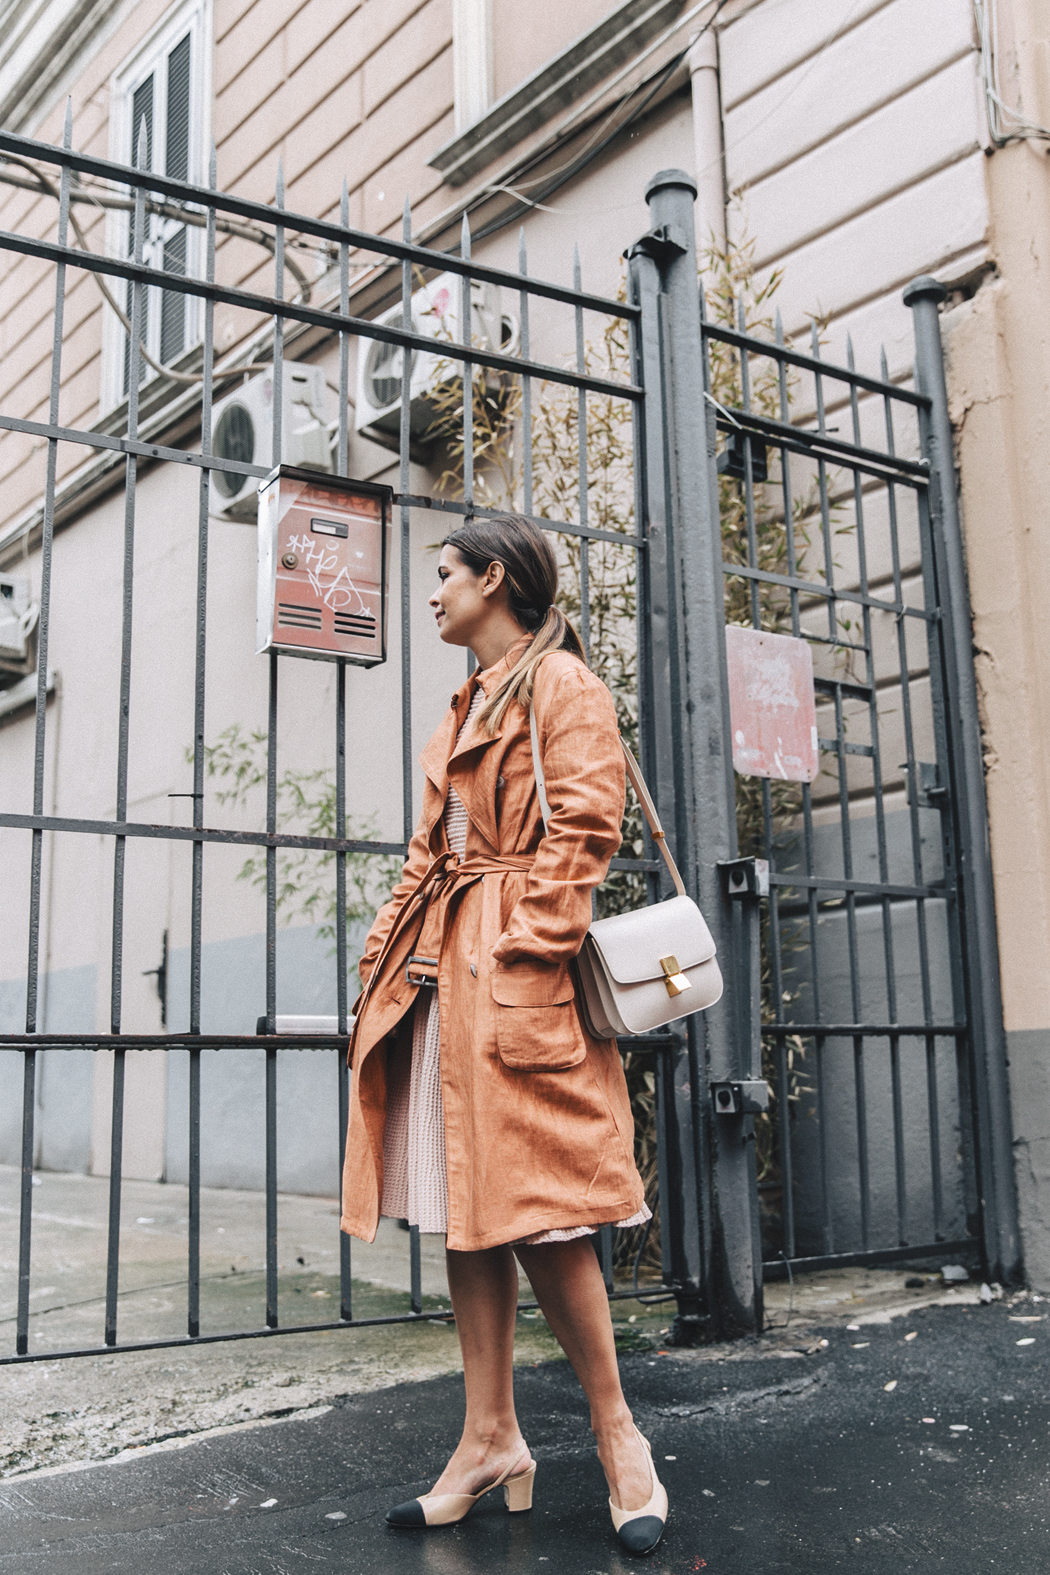 Armani-Trench_Coat-Pink_Dress-Chanel_Slingbacks-Celine_Box_Bag-Outfit-Milan_Fashion_Week-Street_Style-20